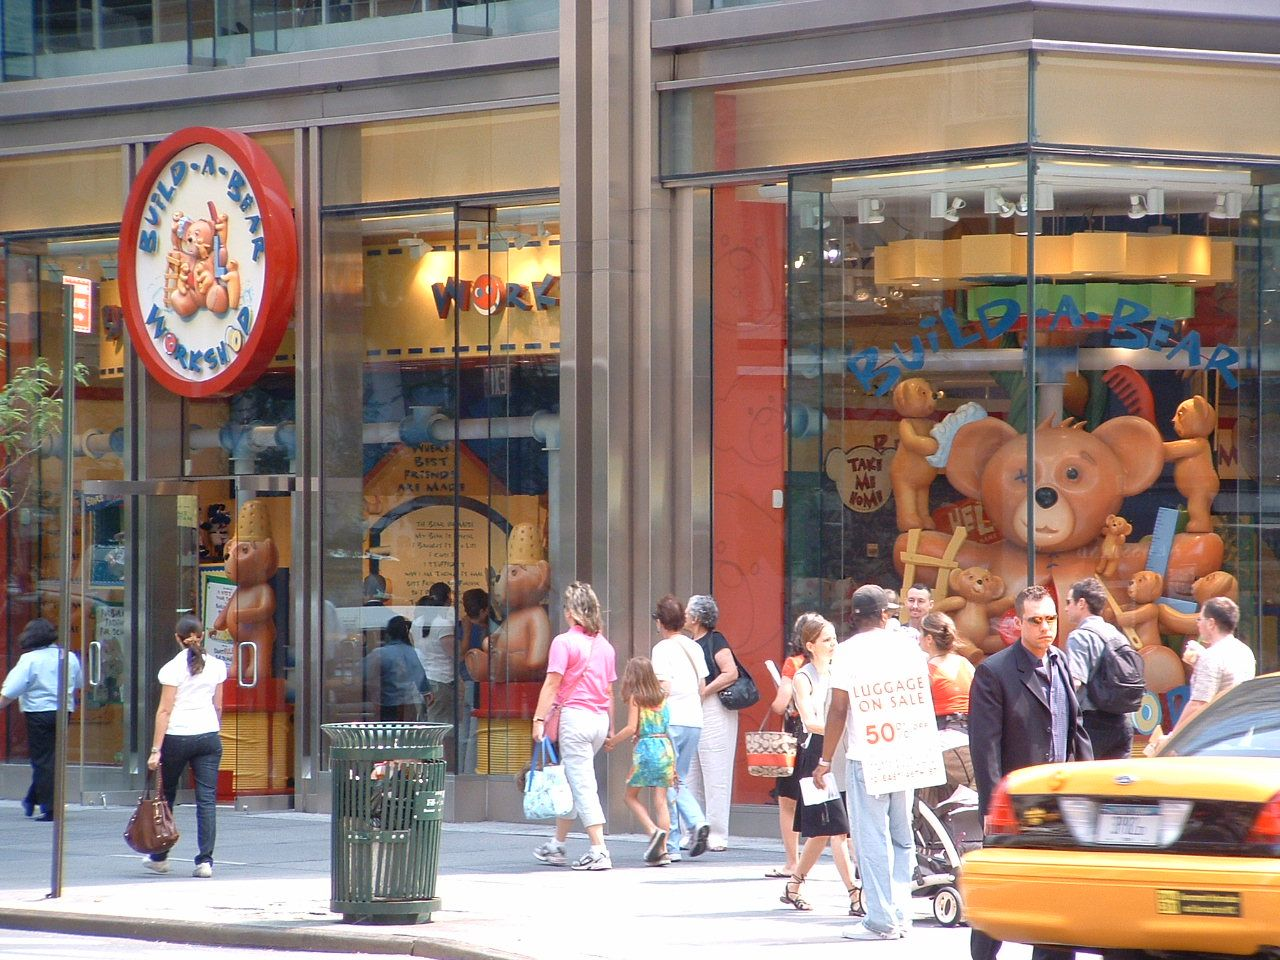 Build A Bear Workshop Location 565 Fifth Ave At 46th St